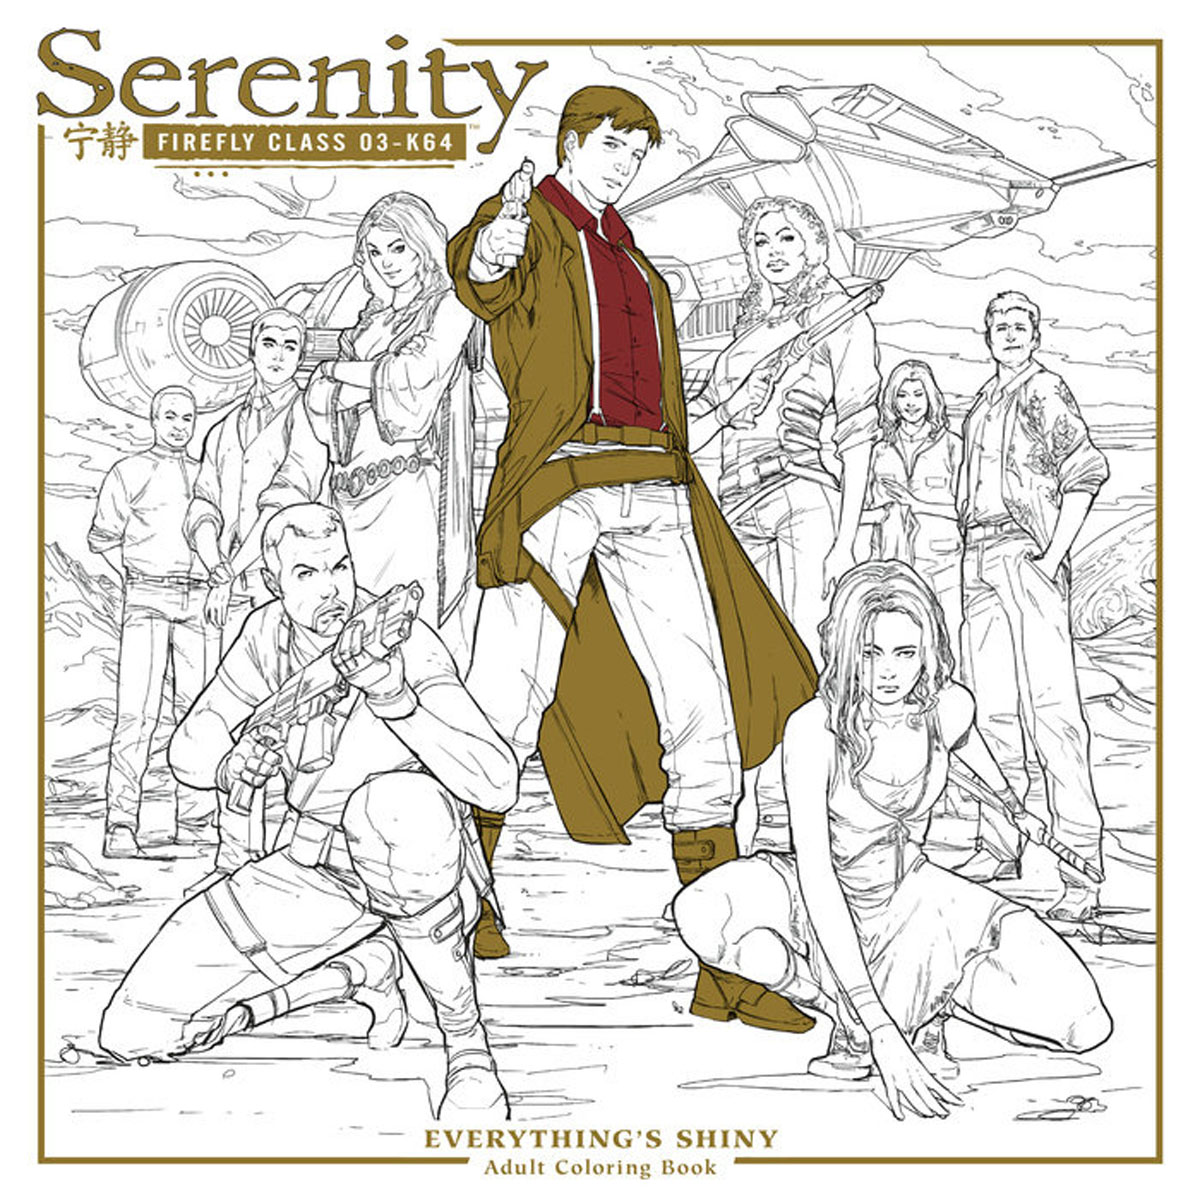 Serenity: Everything's Shiny Adult Coloring Book renolux автокресло serenity griffin